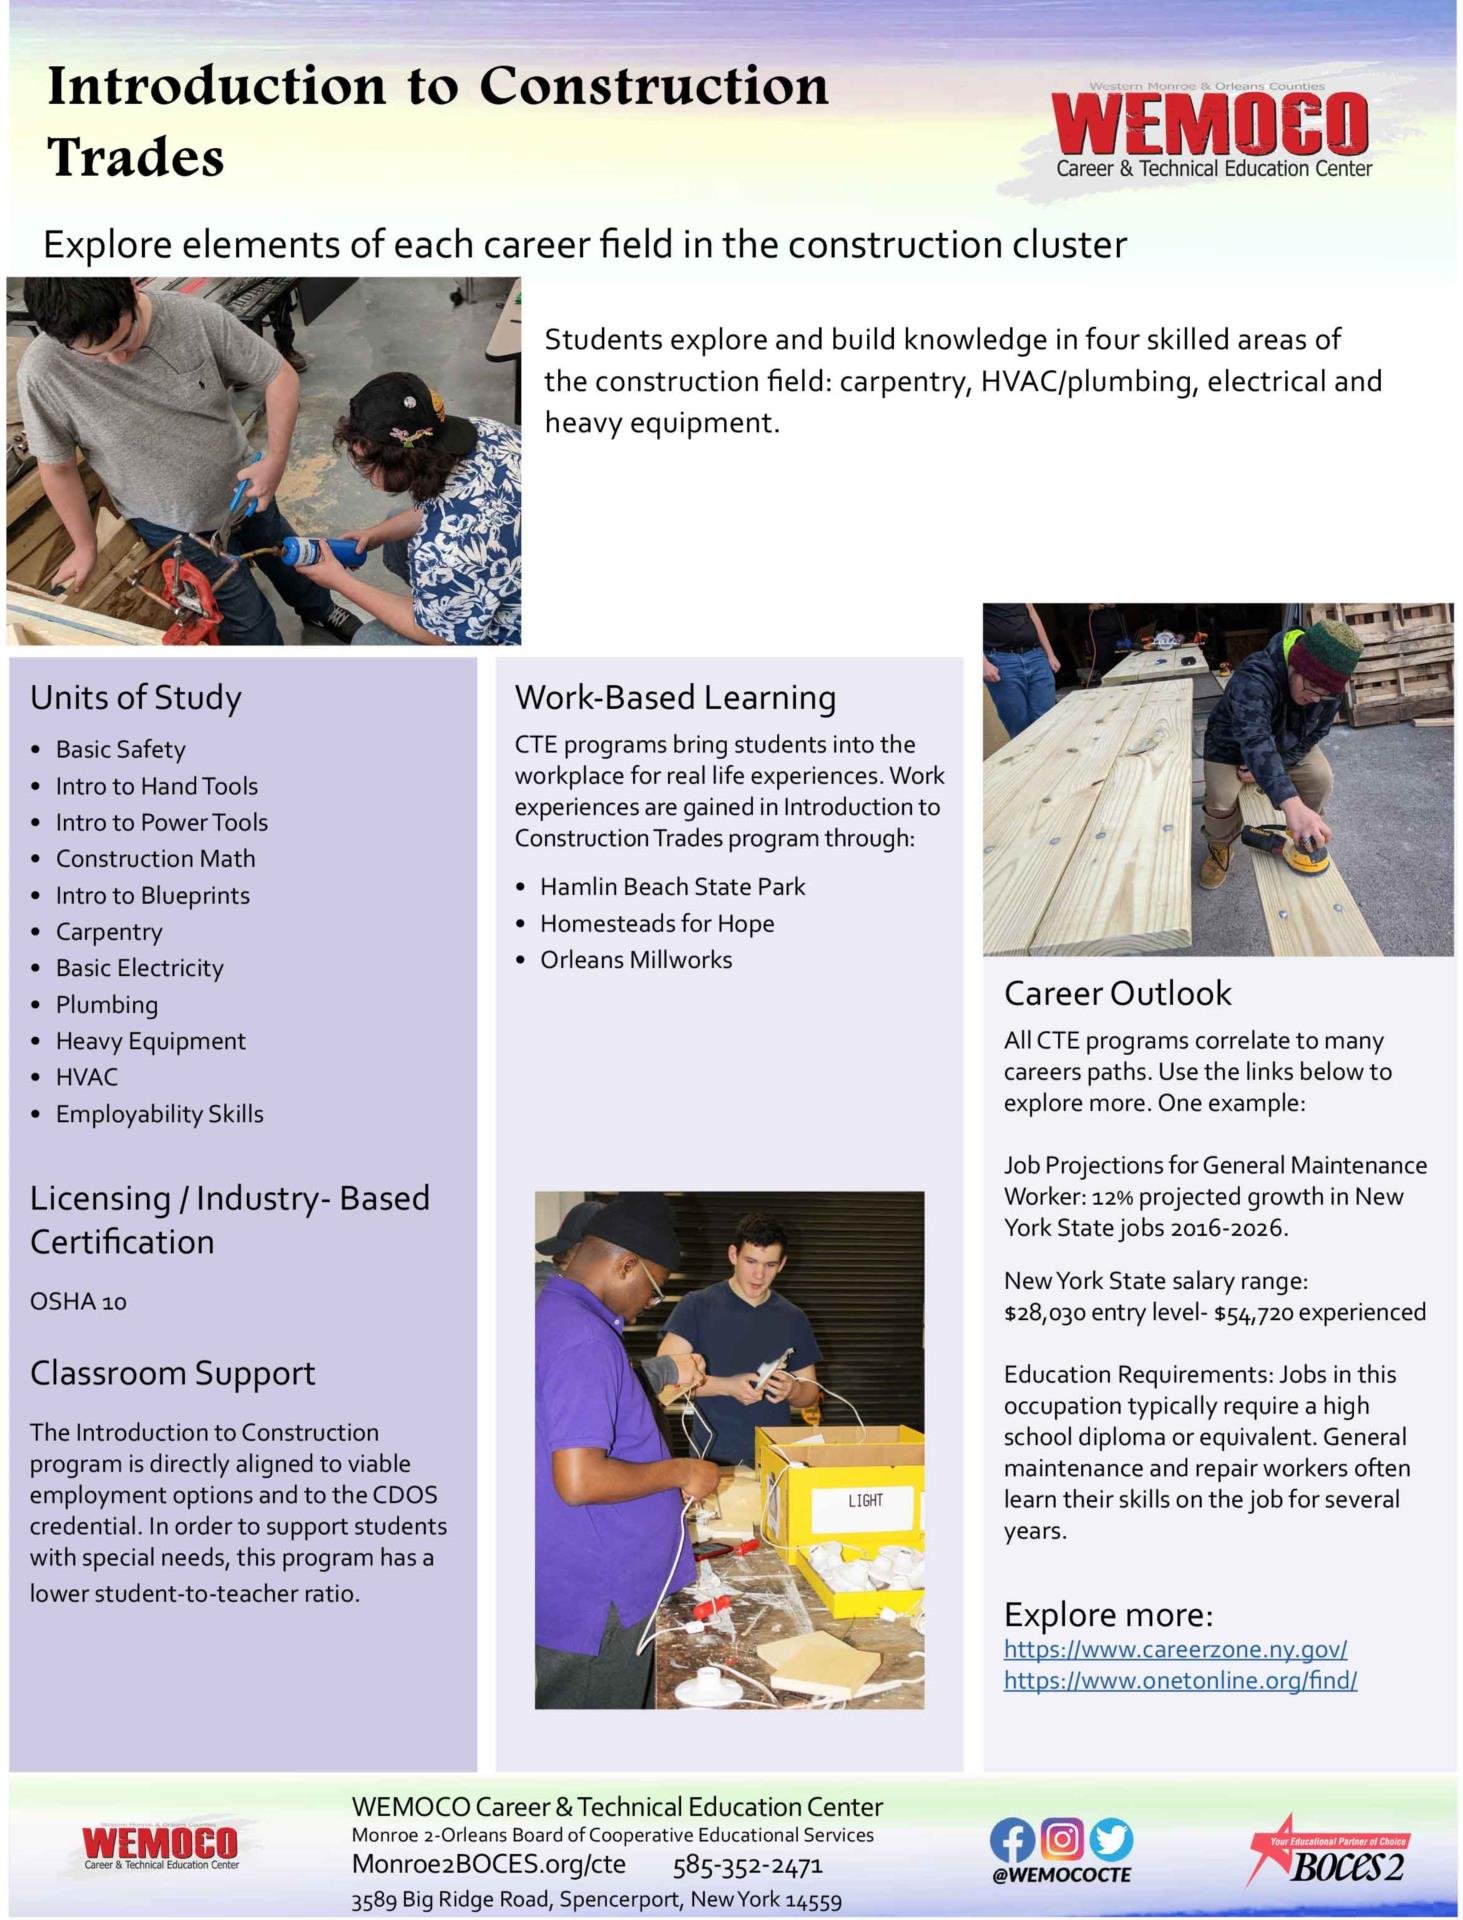 Download a PDF overview of the Introduction to Construction Trades program information